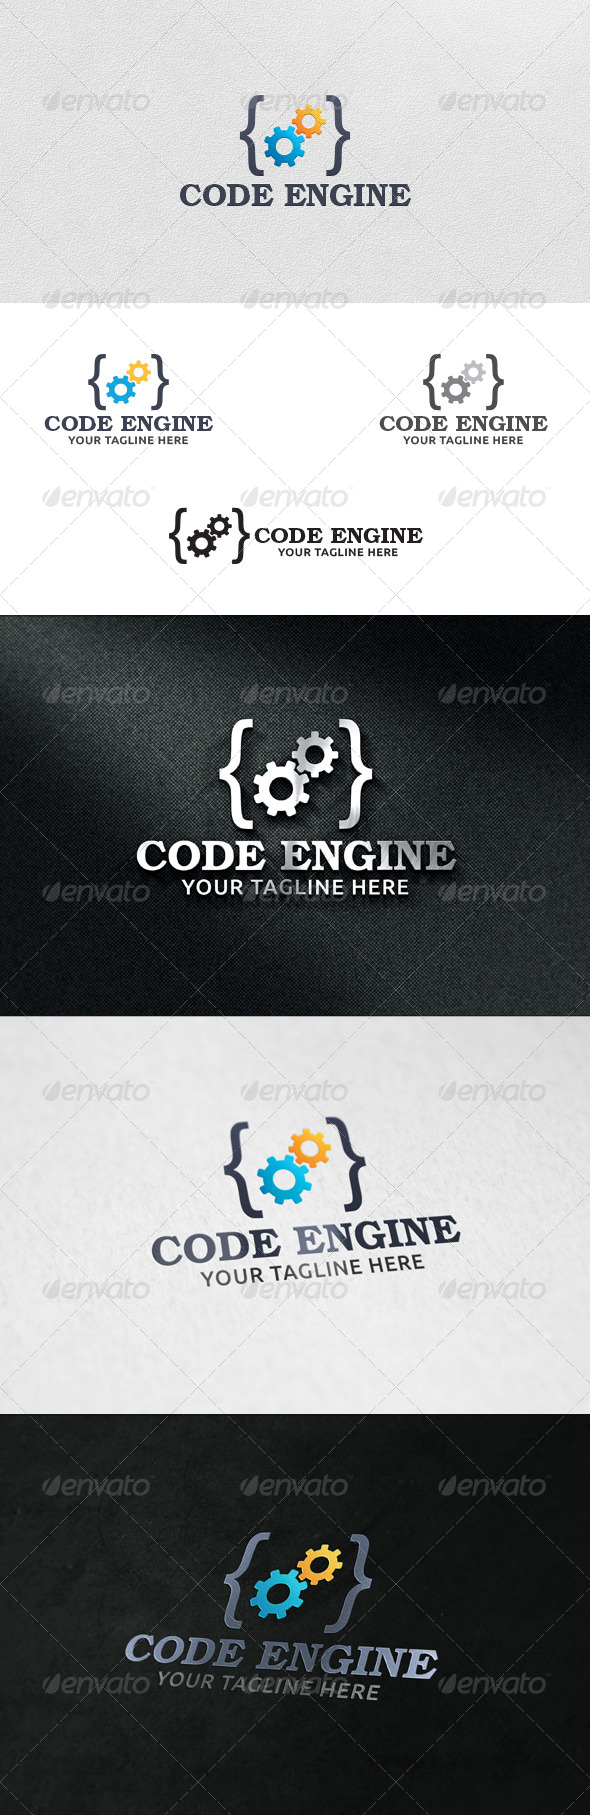 Code Engine Logo Template